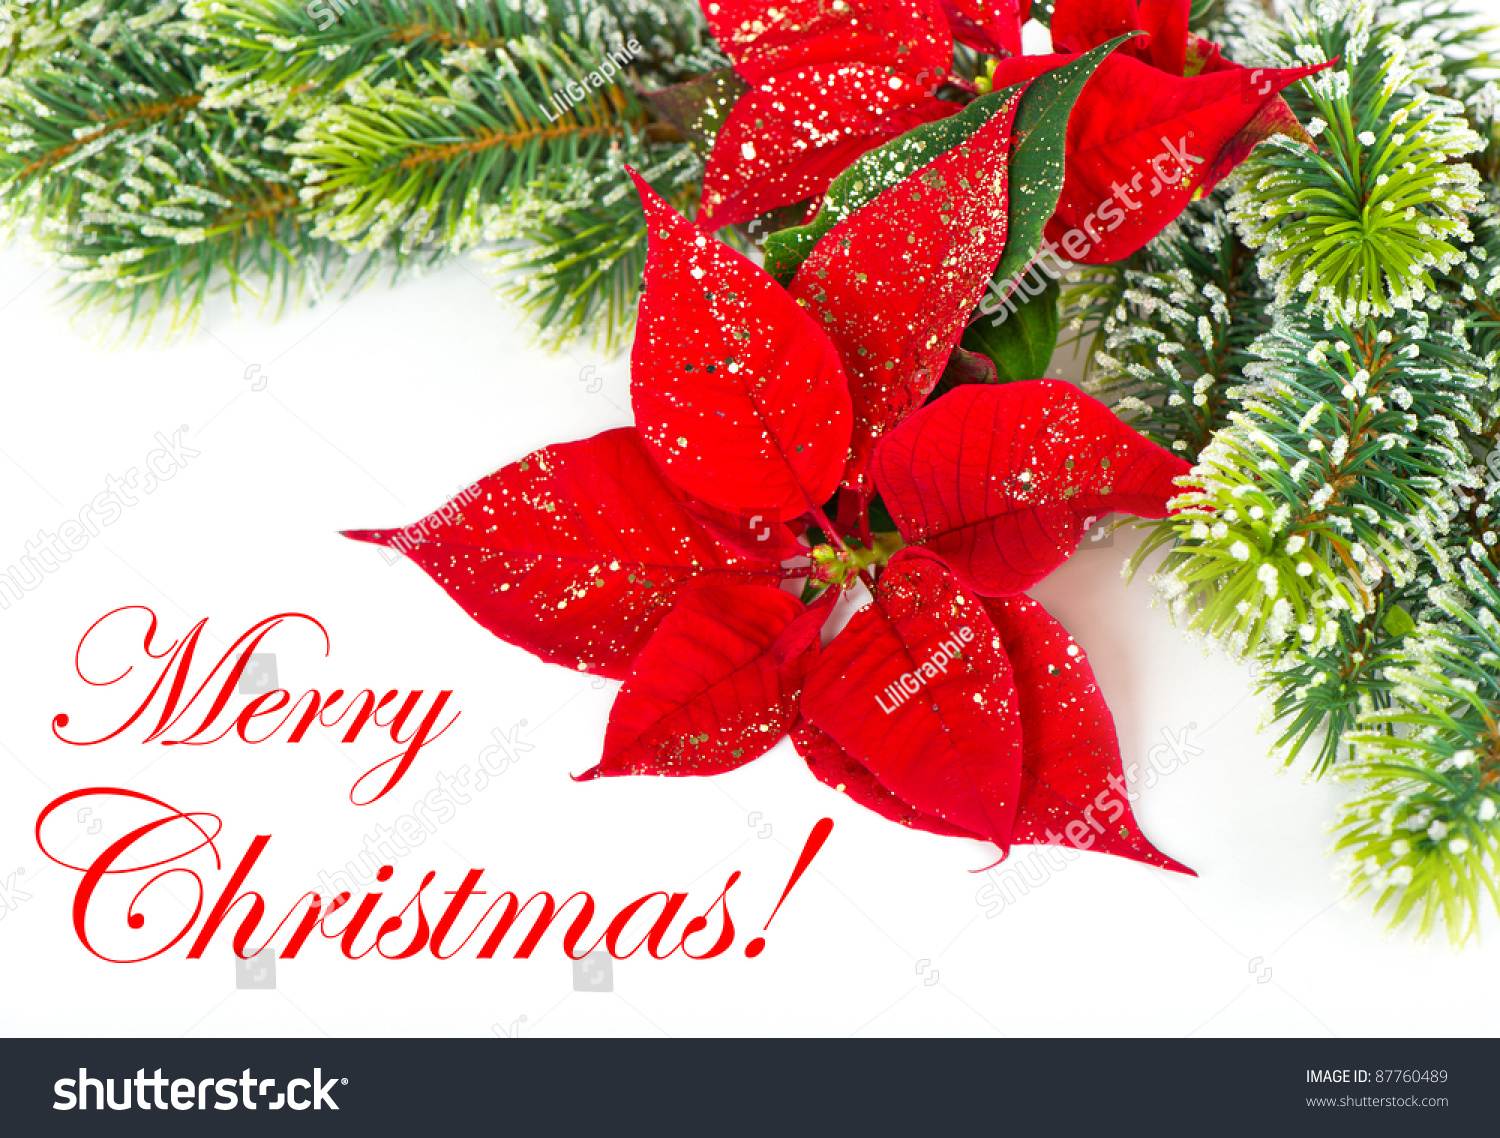 Merry Christmas Card Concept Red Poinsettia Stock Photo